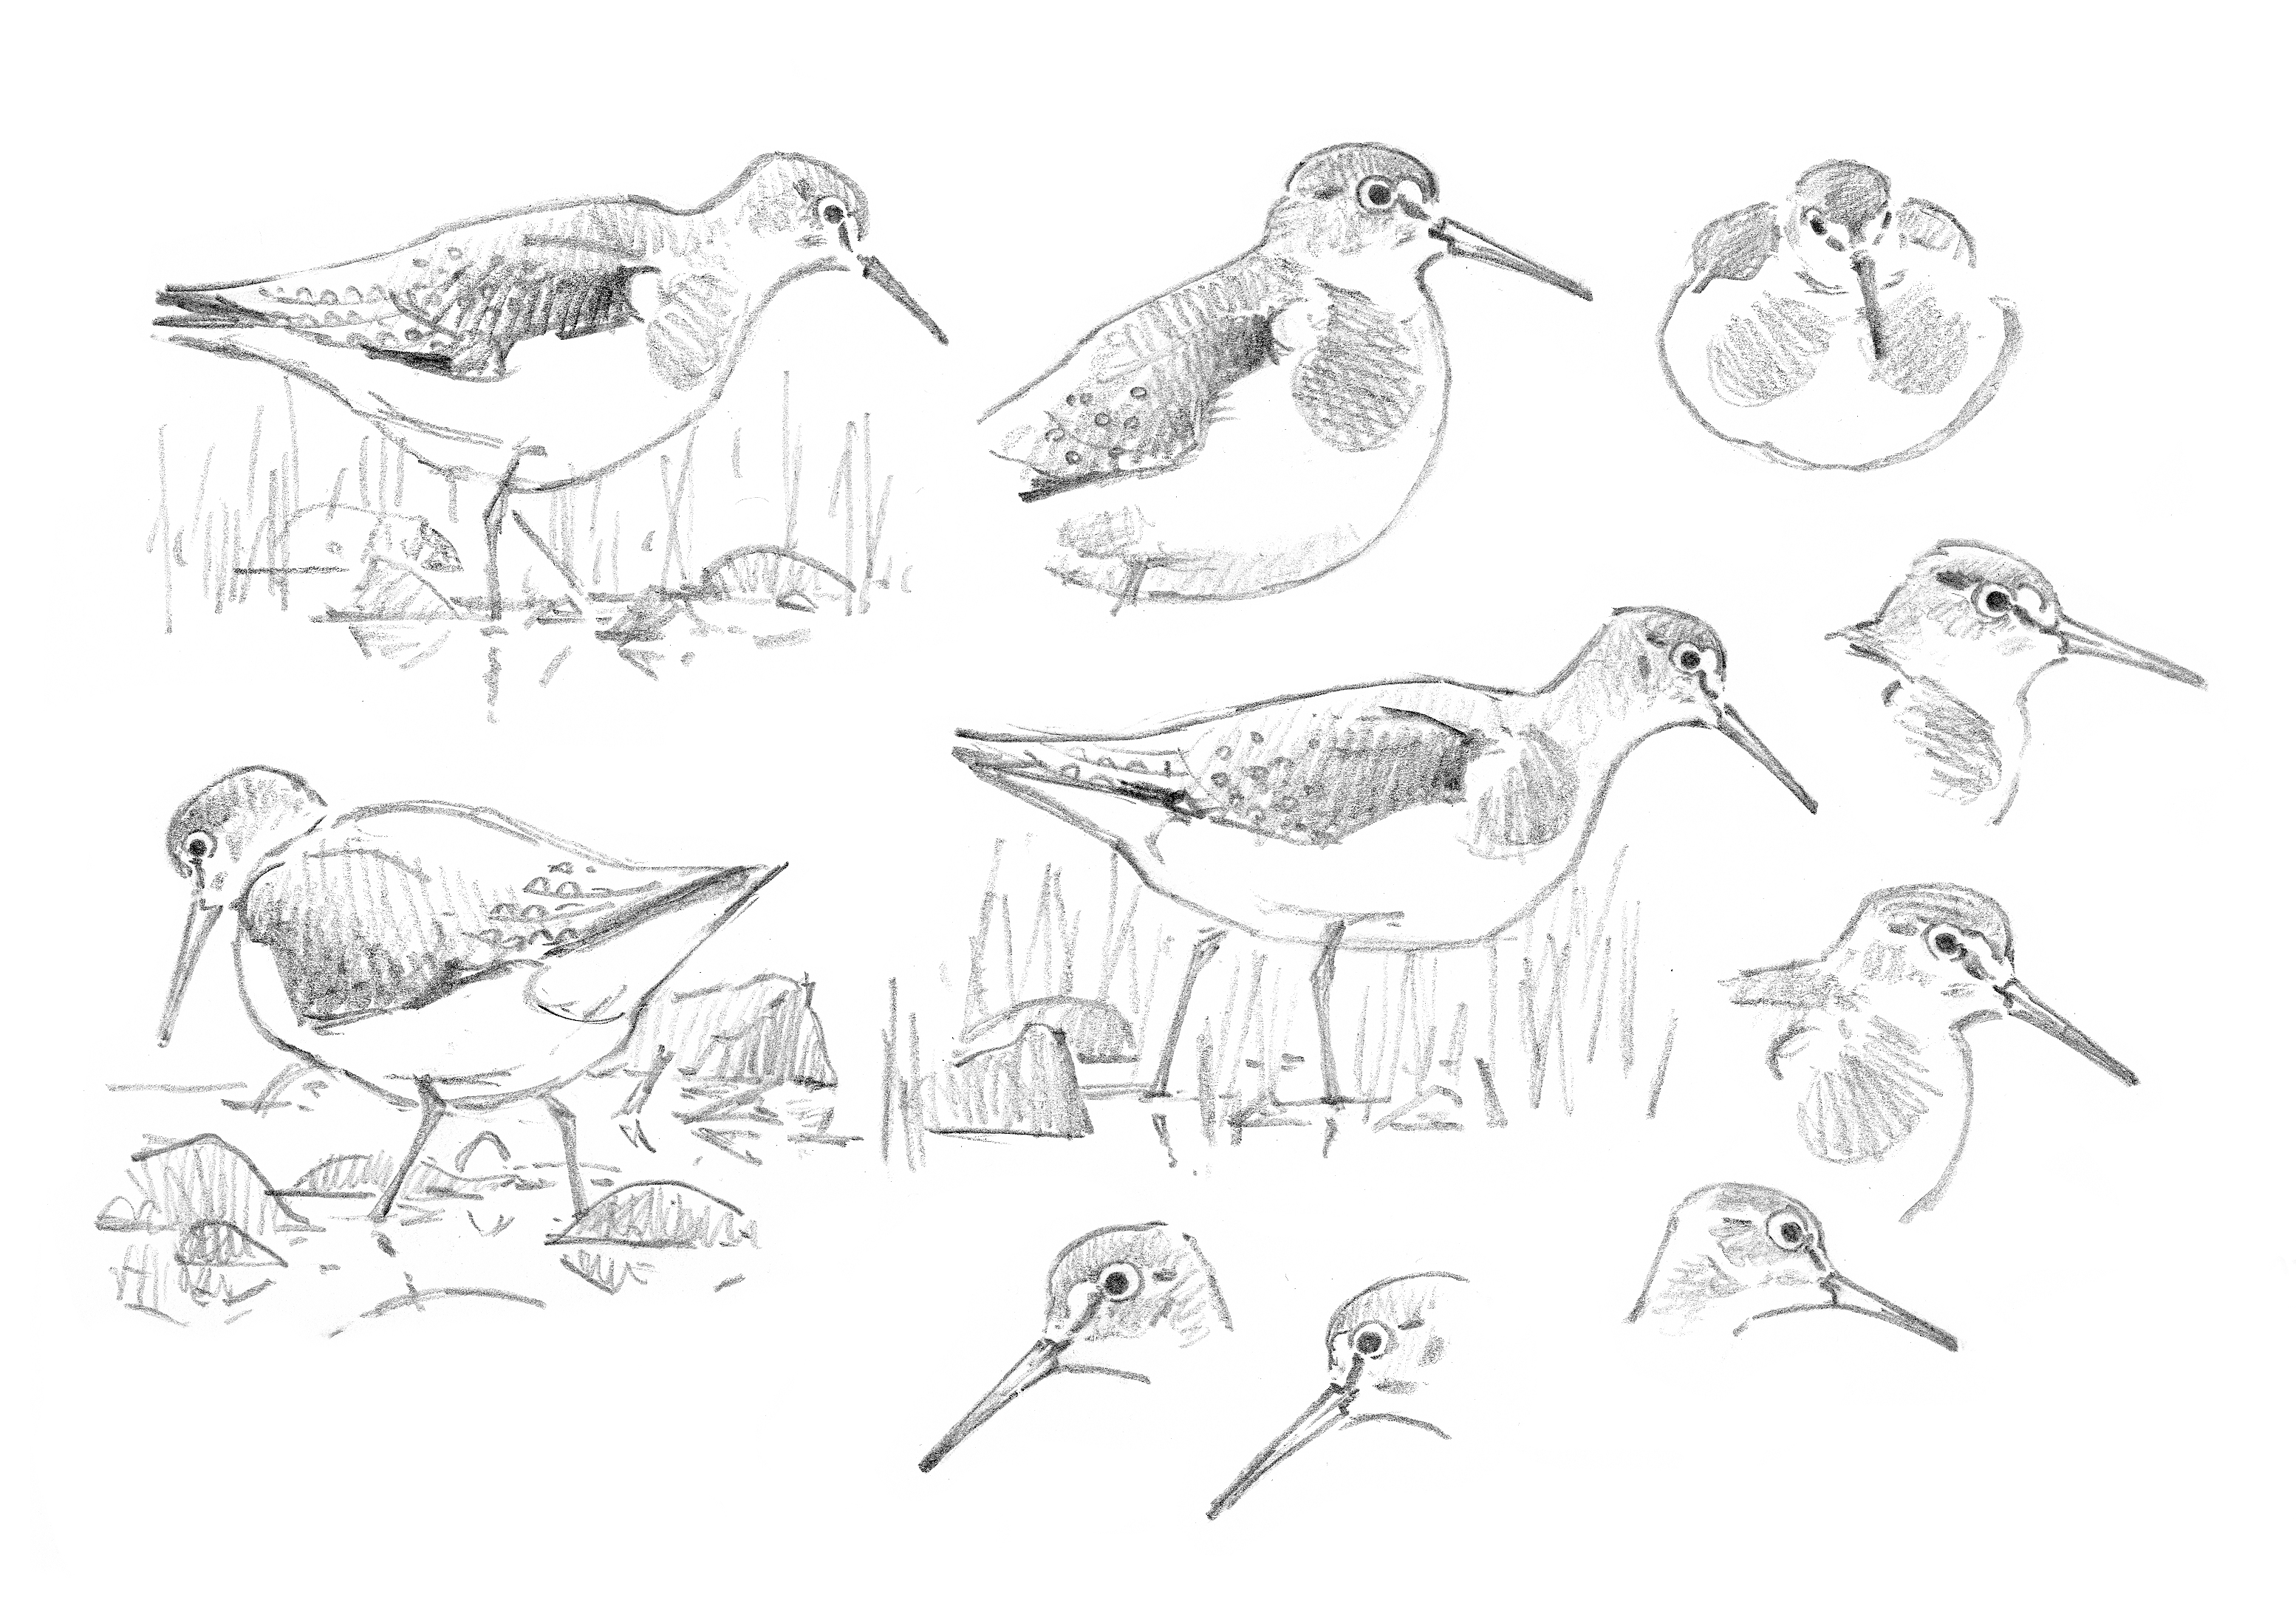 Solitary Sandpiper sketchbook studies - at 300 dpi